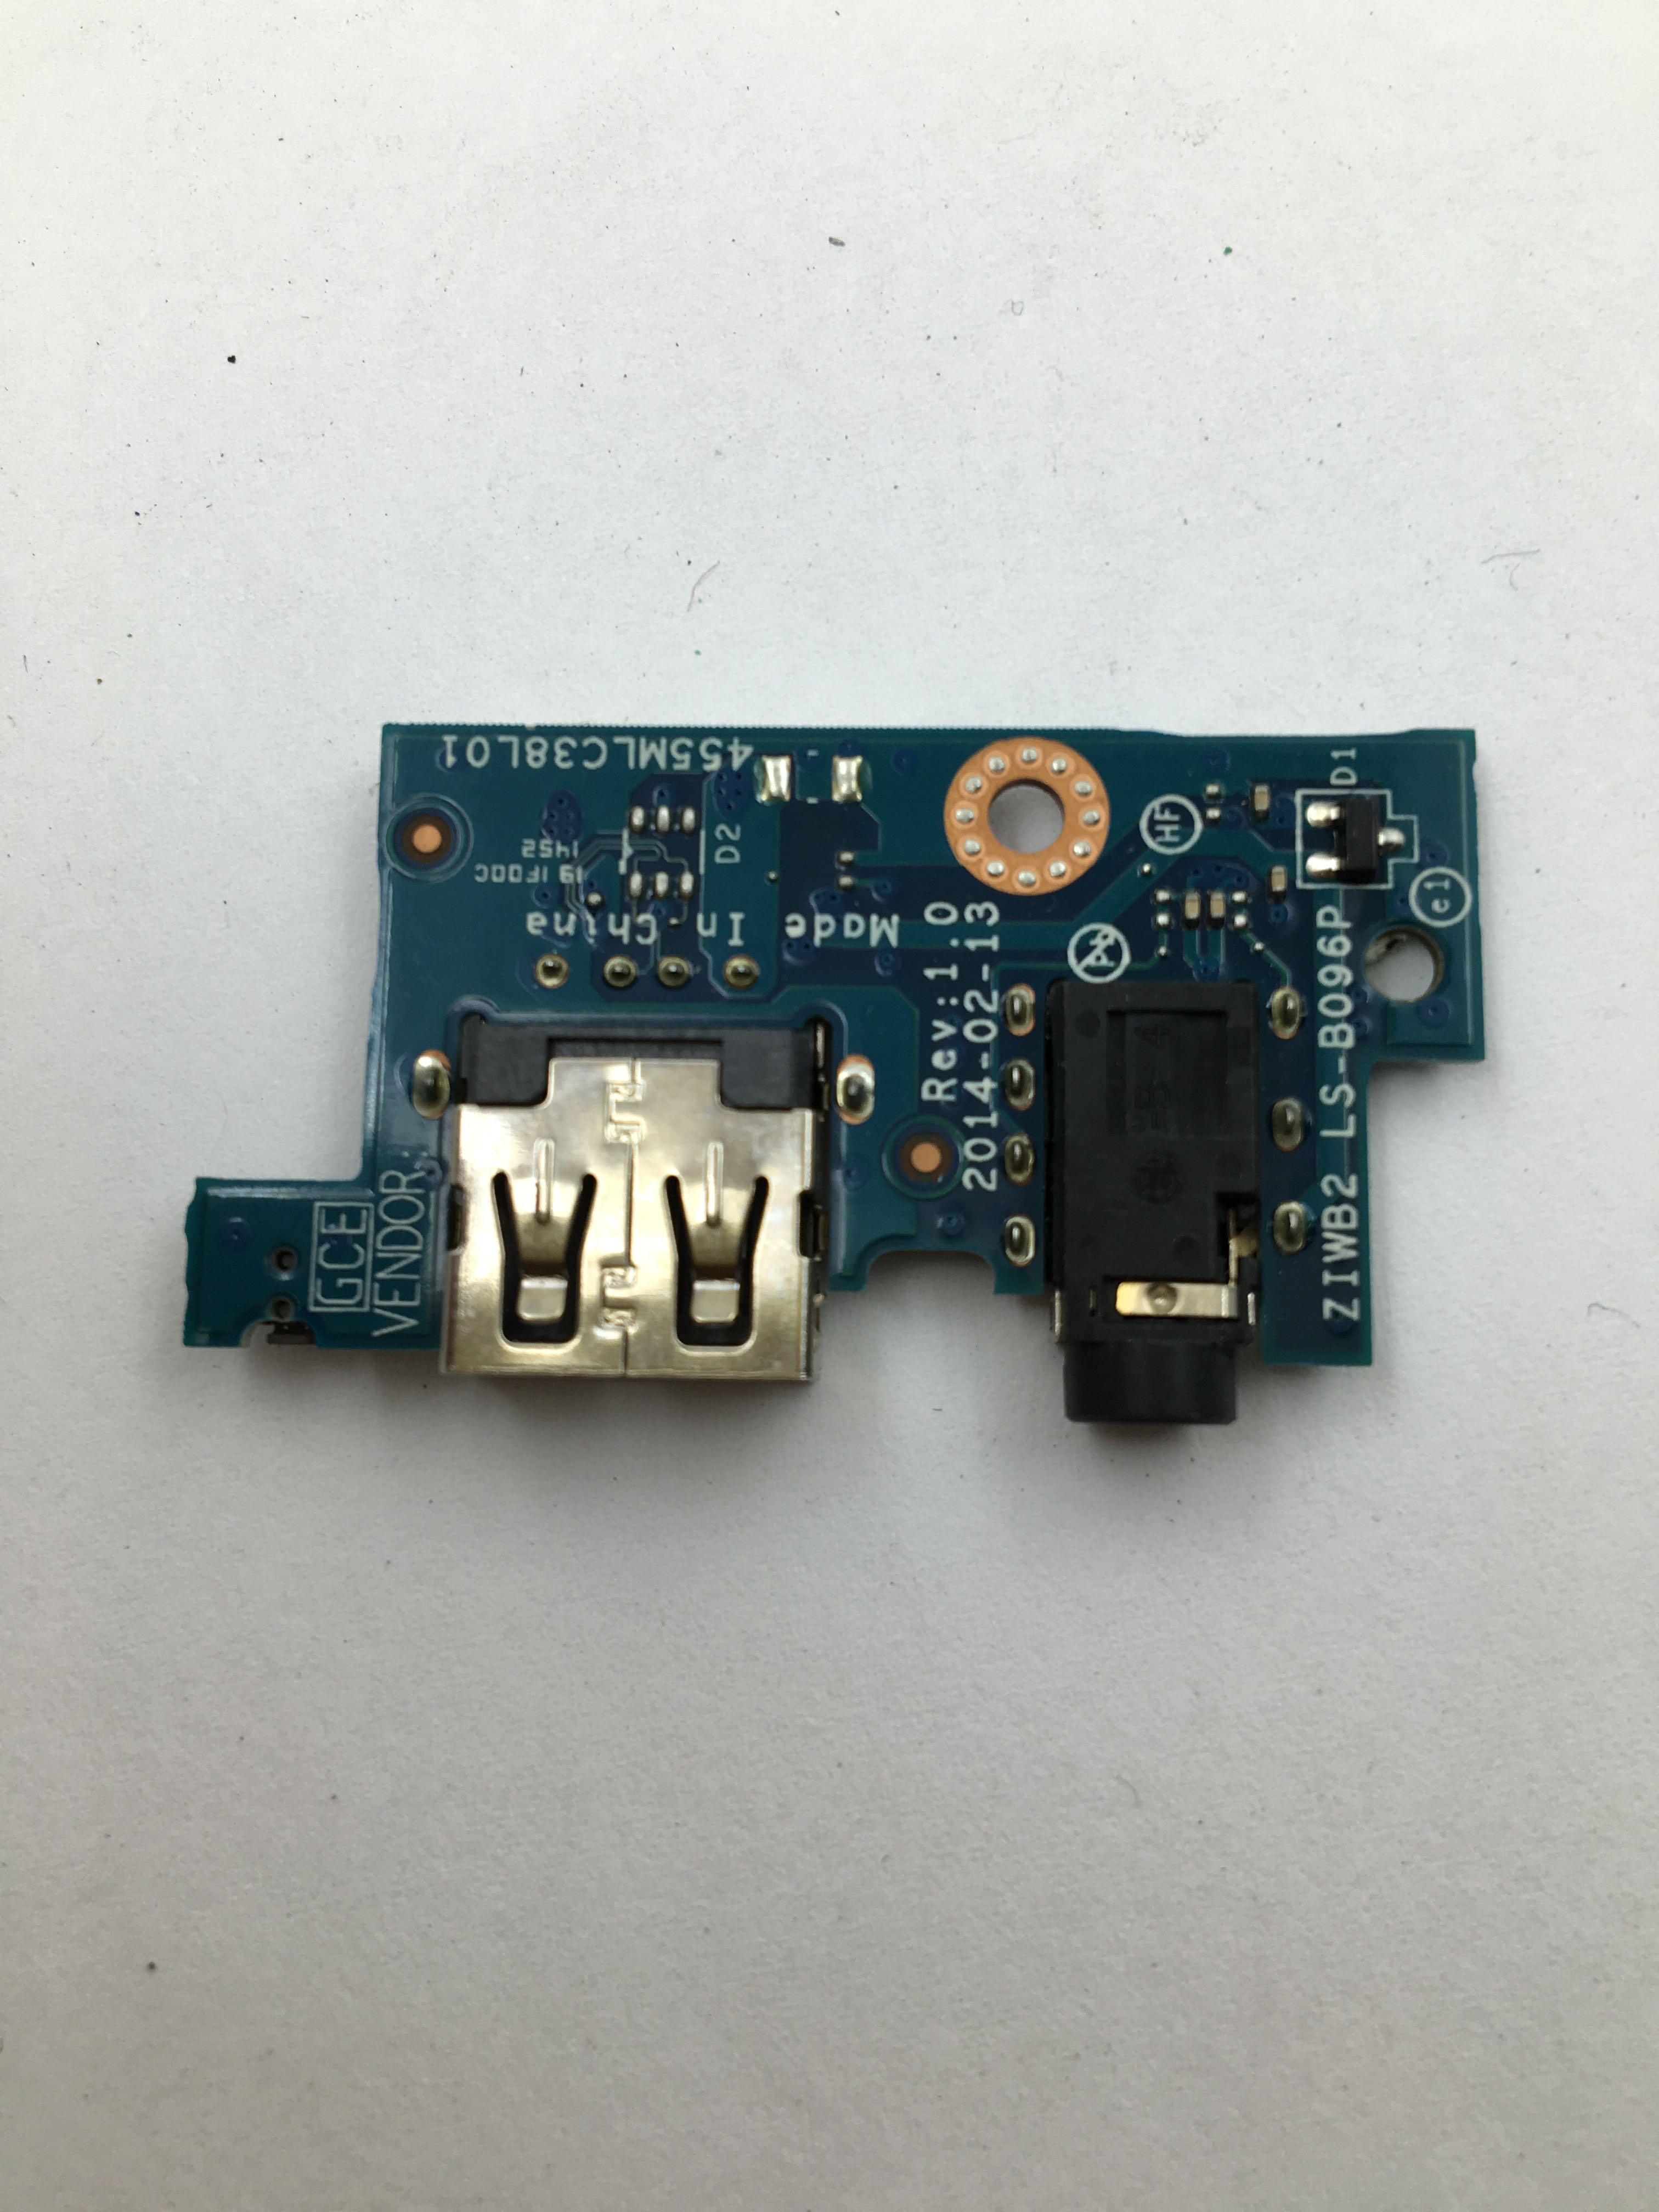 Free Shipping Genuine For Lenovo B40 B40 45 B40 70 305 B50 30 B50 45 B50 70 B50 75 USB Audio Board ZIWB2 LS B096P WORKS